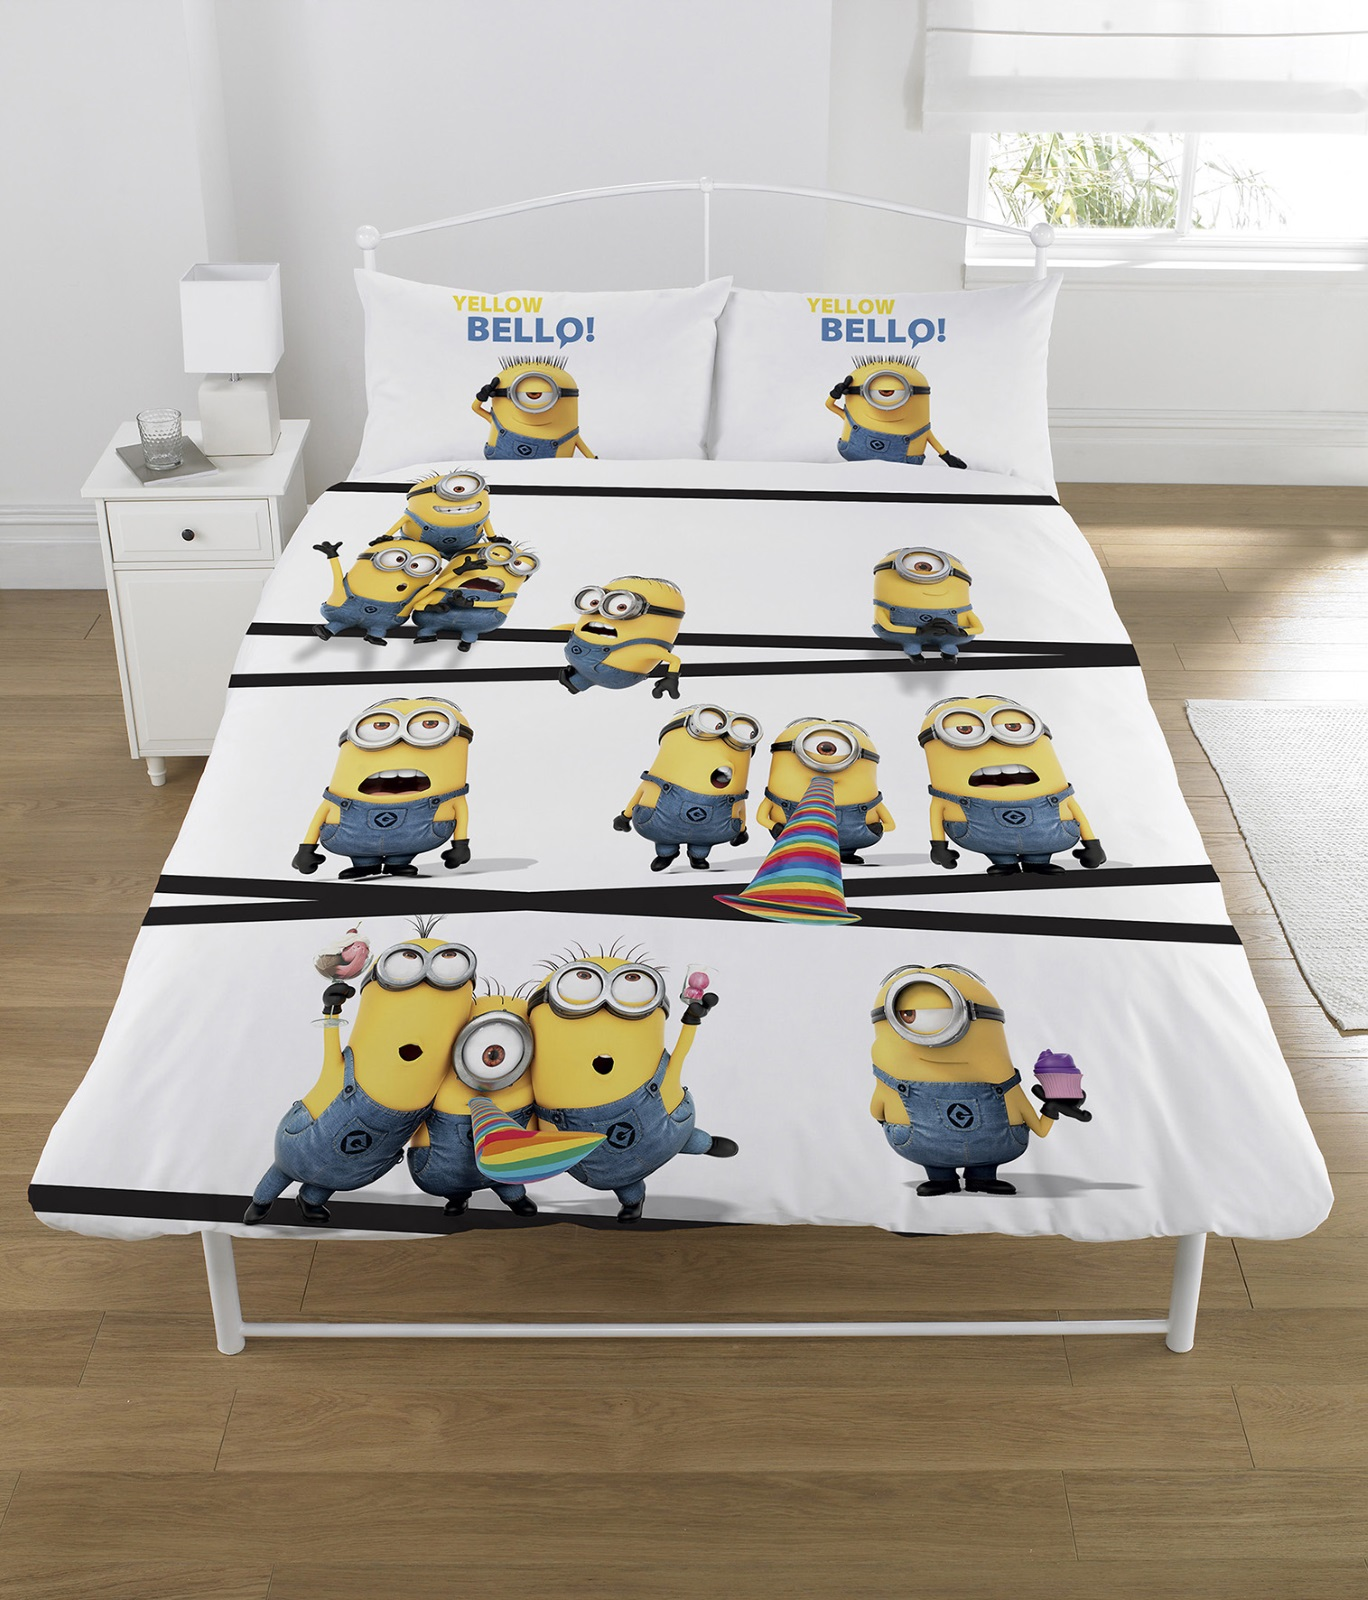 Despicable Me Bedroom Accessories 28 Images Kids Cute Minion Bedroom Decor From Despicable